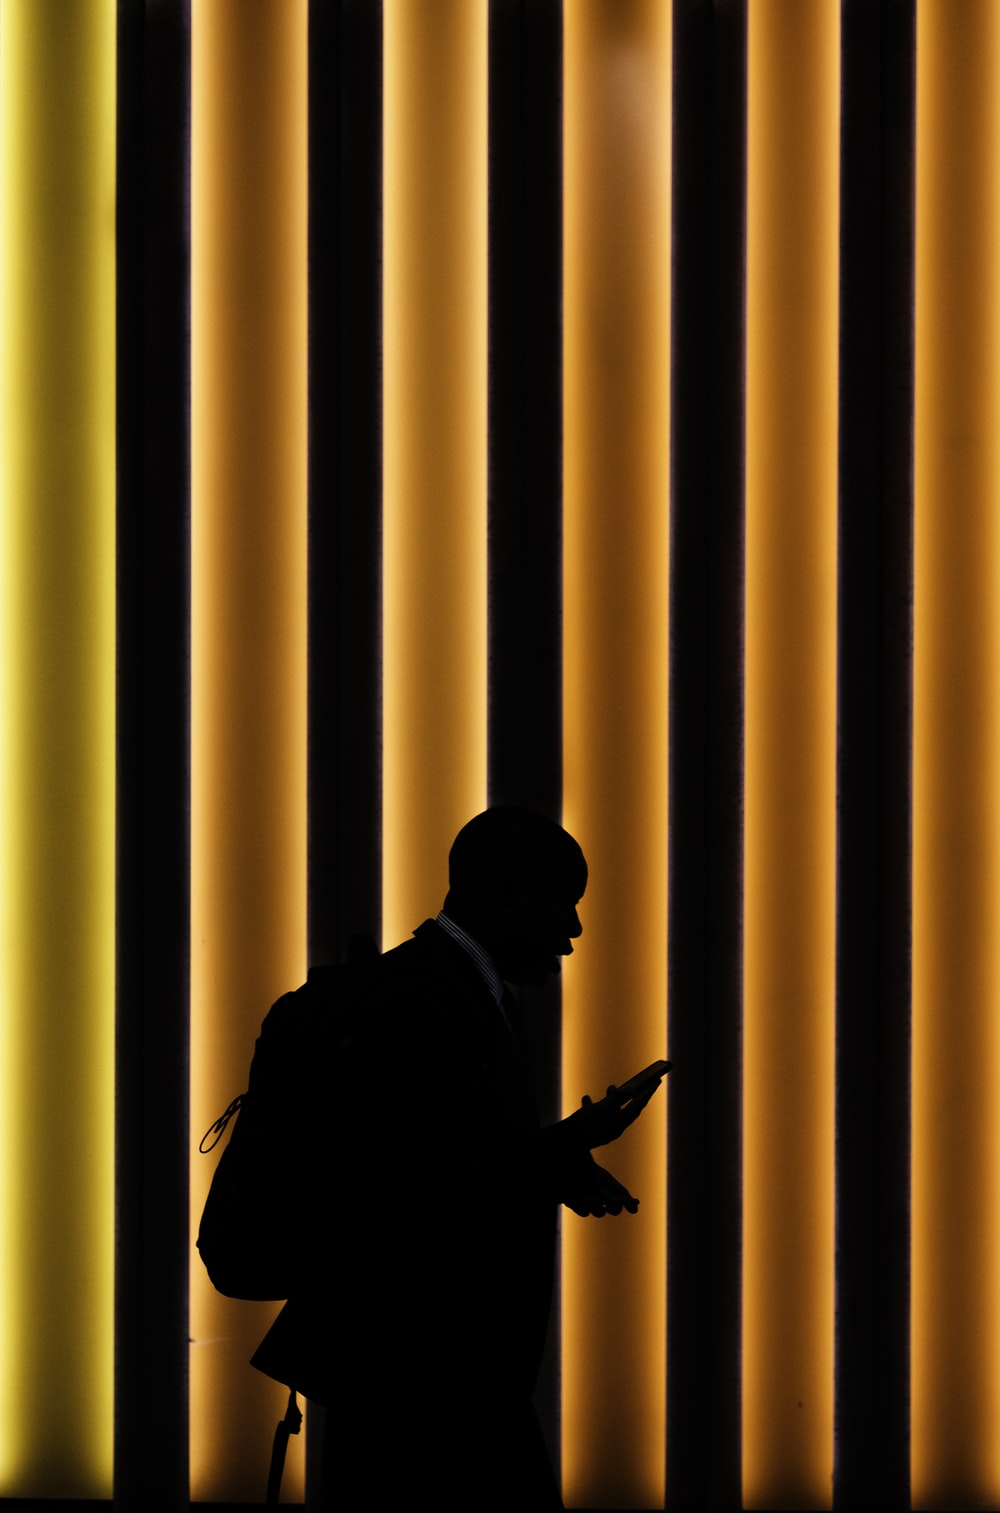 silhouette of man standing on orange and black striped background